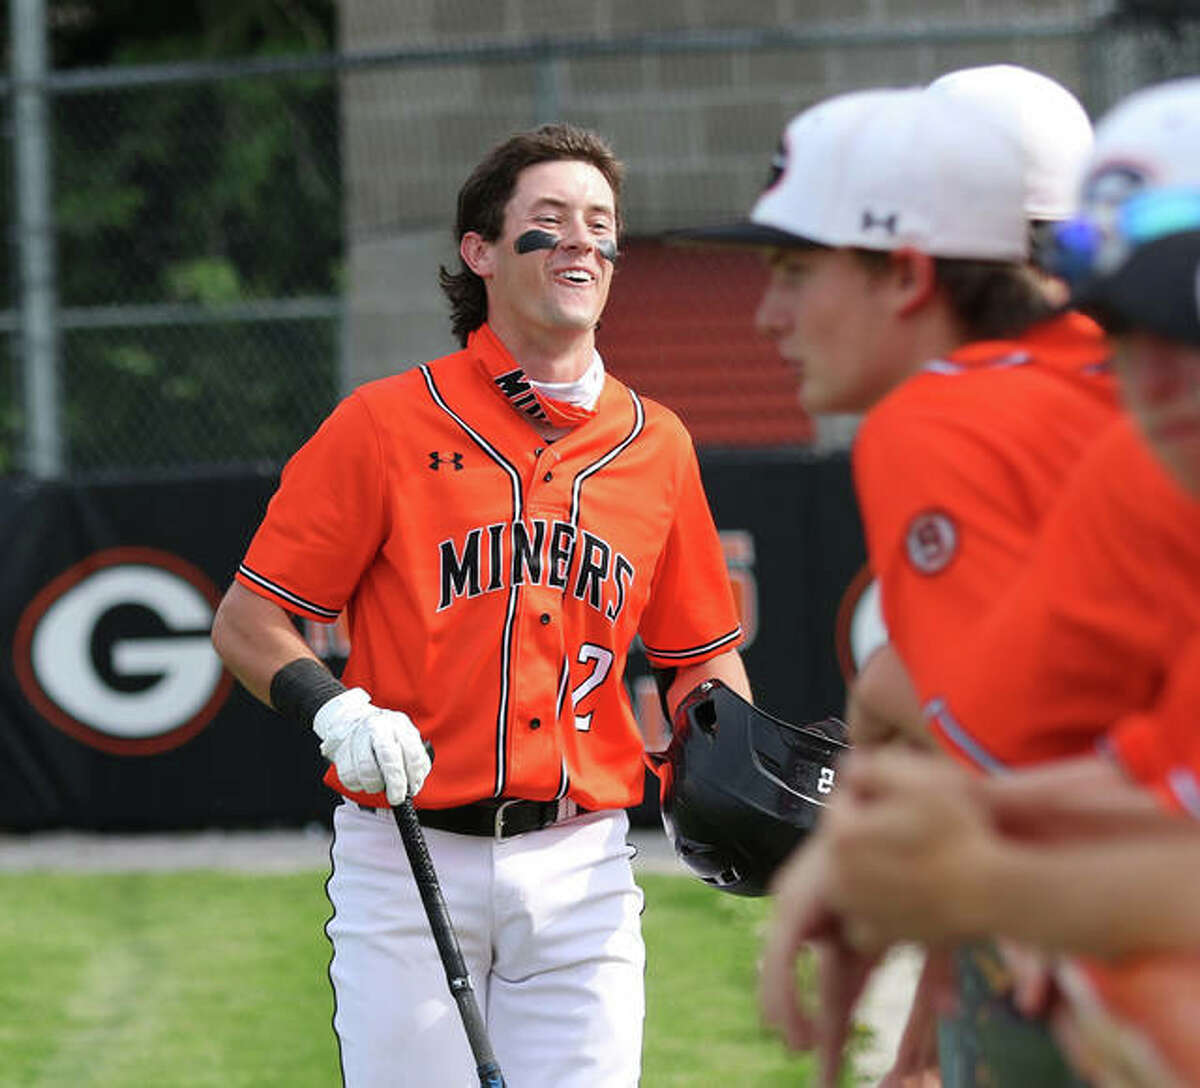 Cameron Hailstone (left), shown returning to his team's dugout after hitting a home run for the Gillespie Miners this spring, had four hits and reached base six times Thursday to lead Alton Post 126 Legion baseball to a victory at Eureka, Missouri.